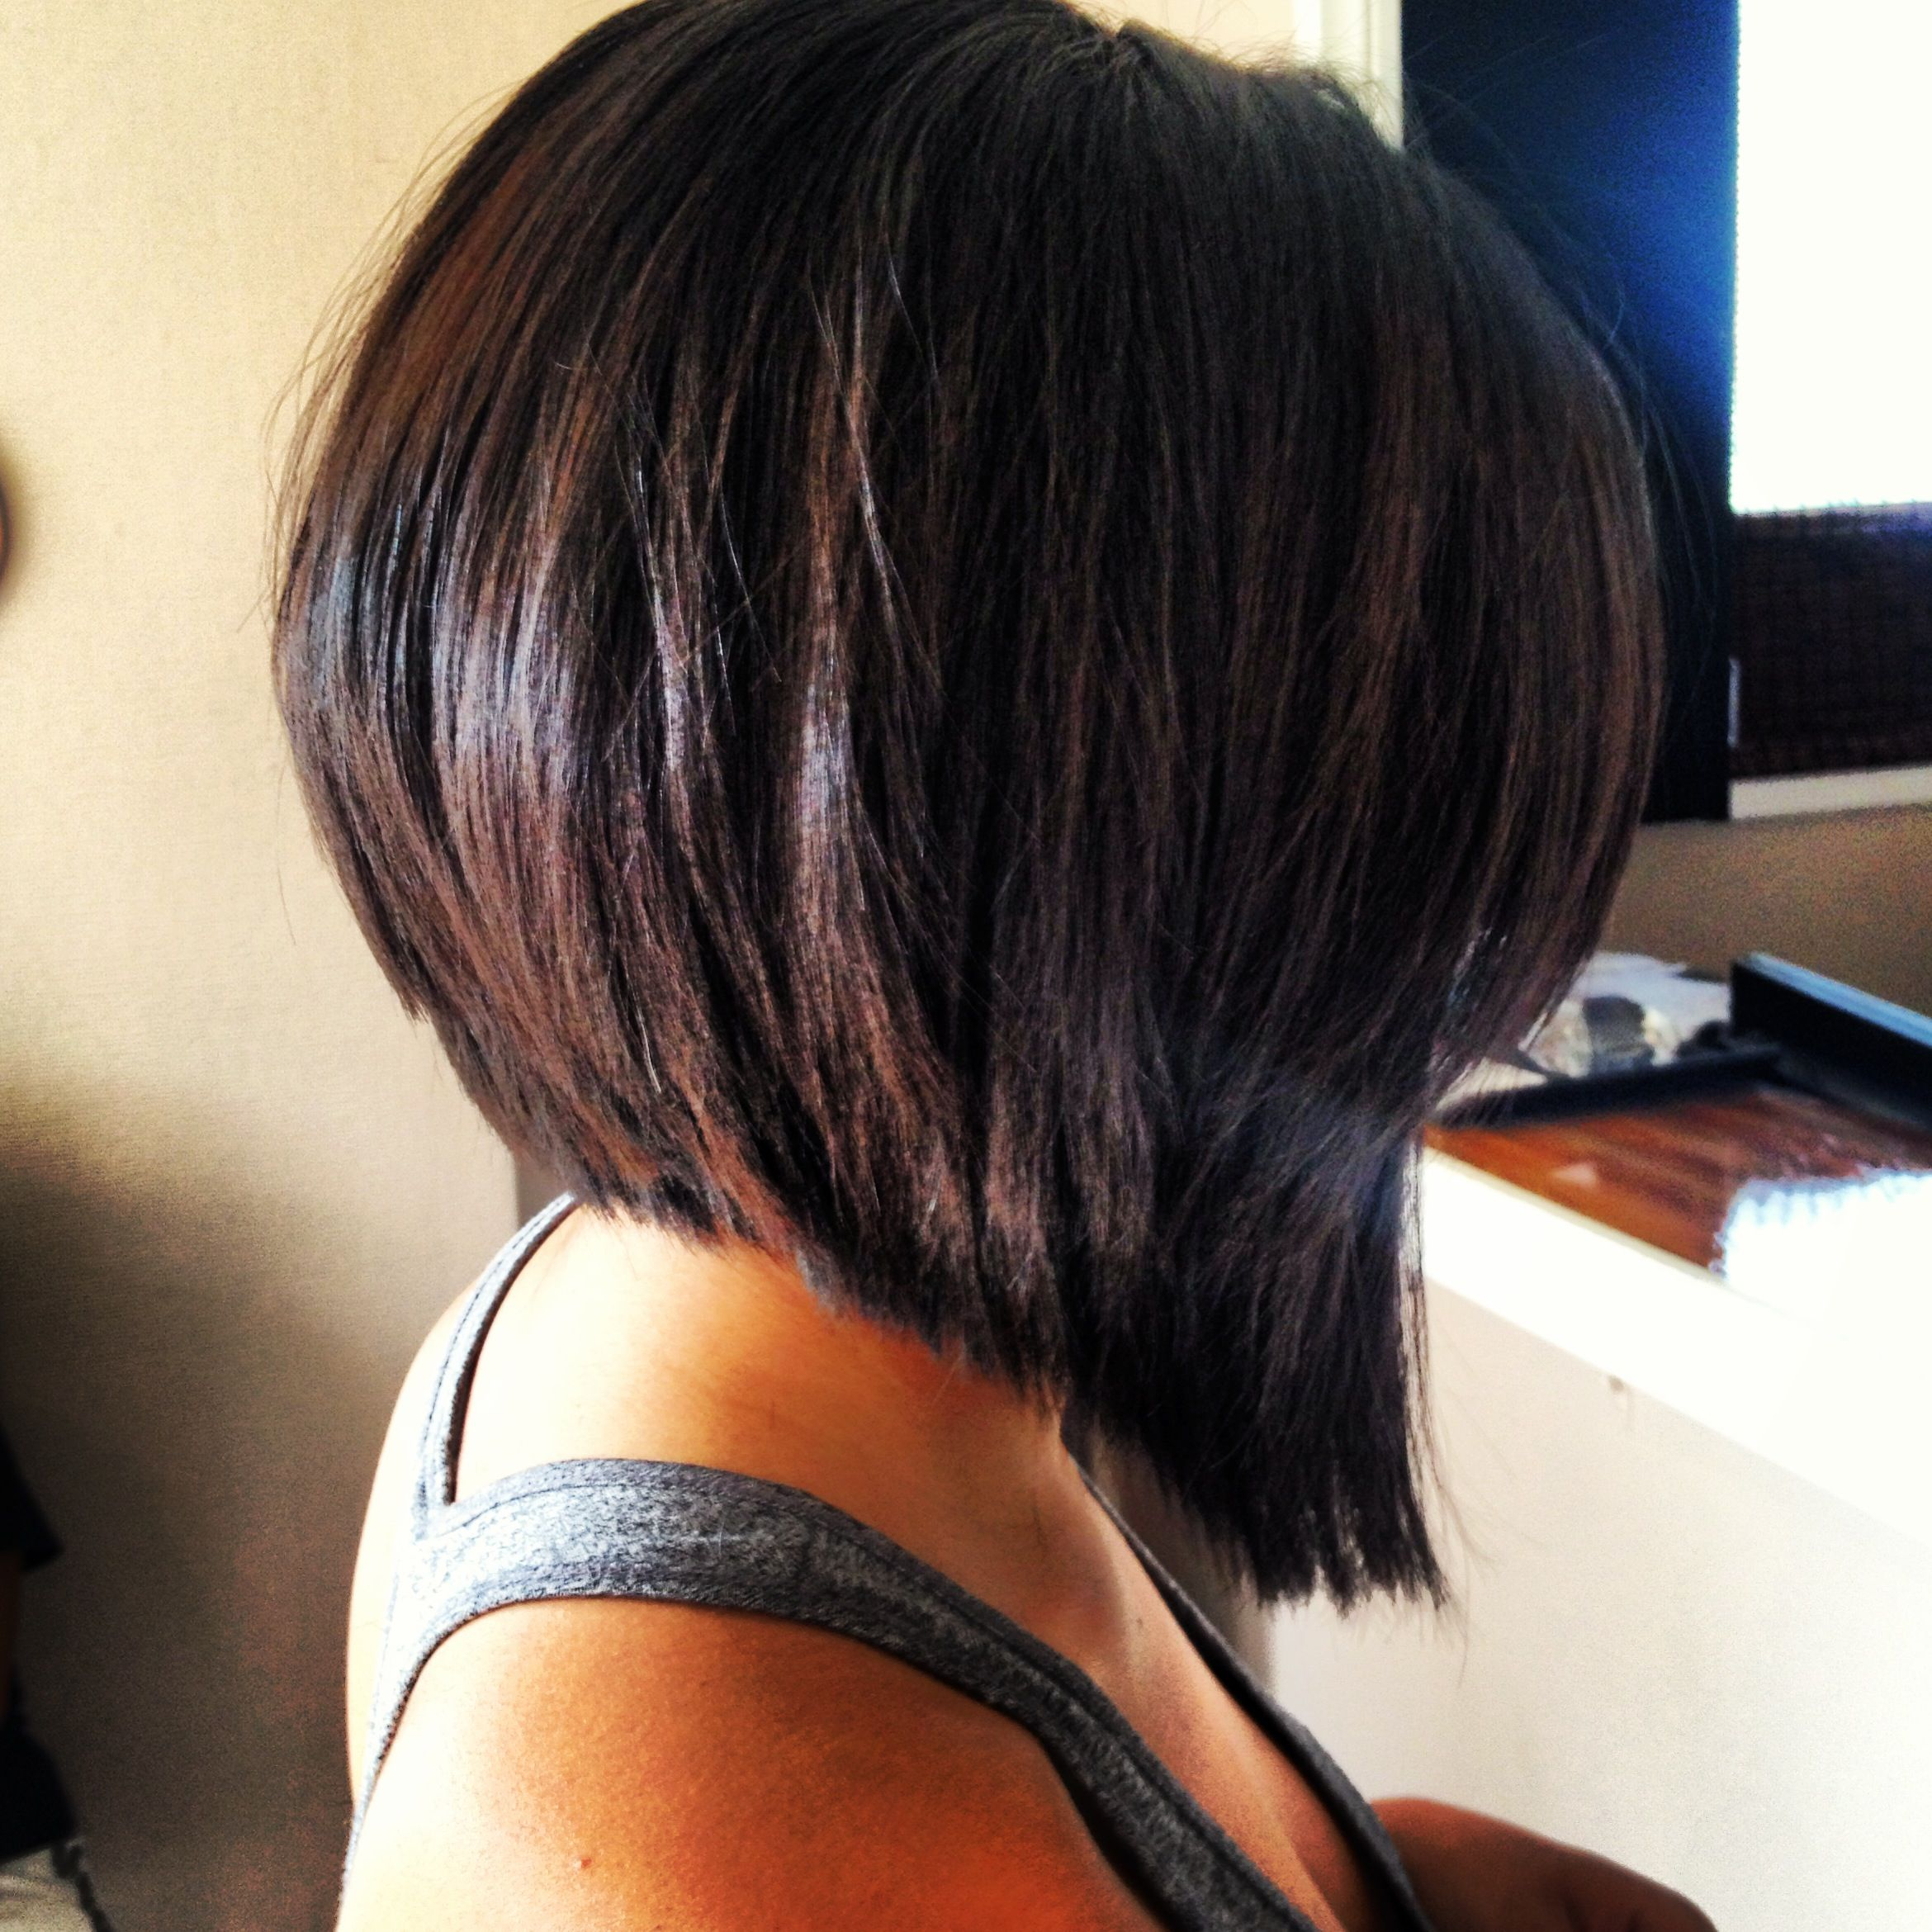 hair cuts styles on pinterest faux hawk haircuts and short hai. Black Bedroom Furniture Sets. Home Design Ideas